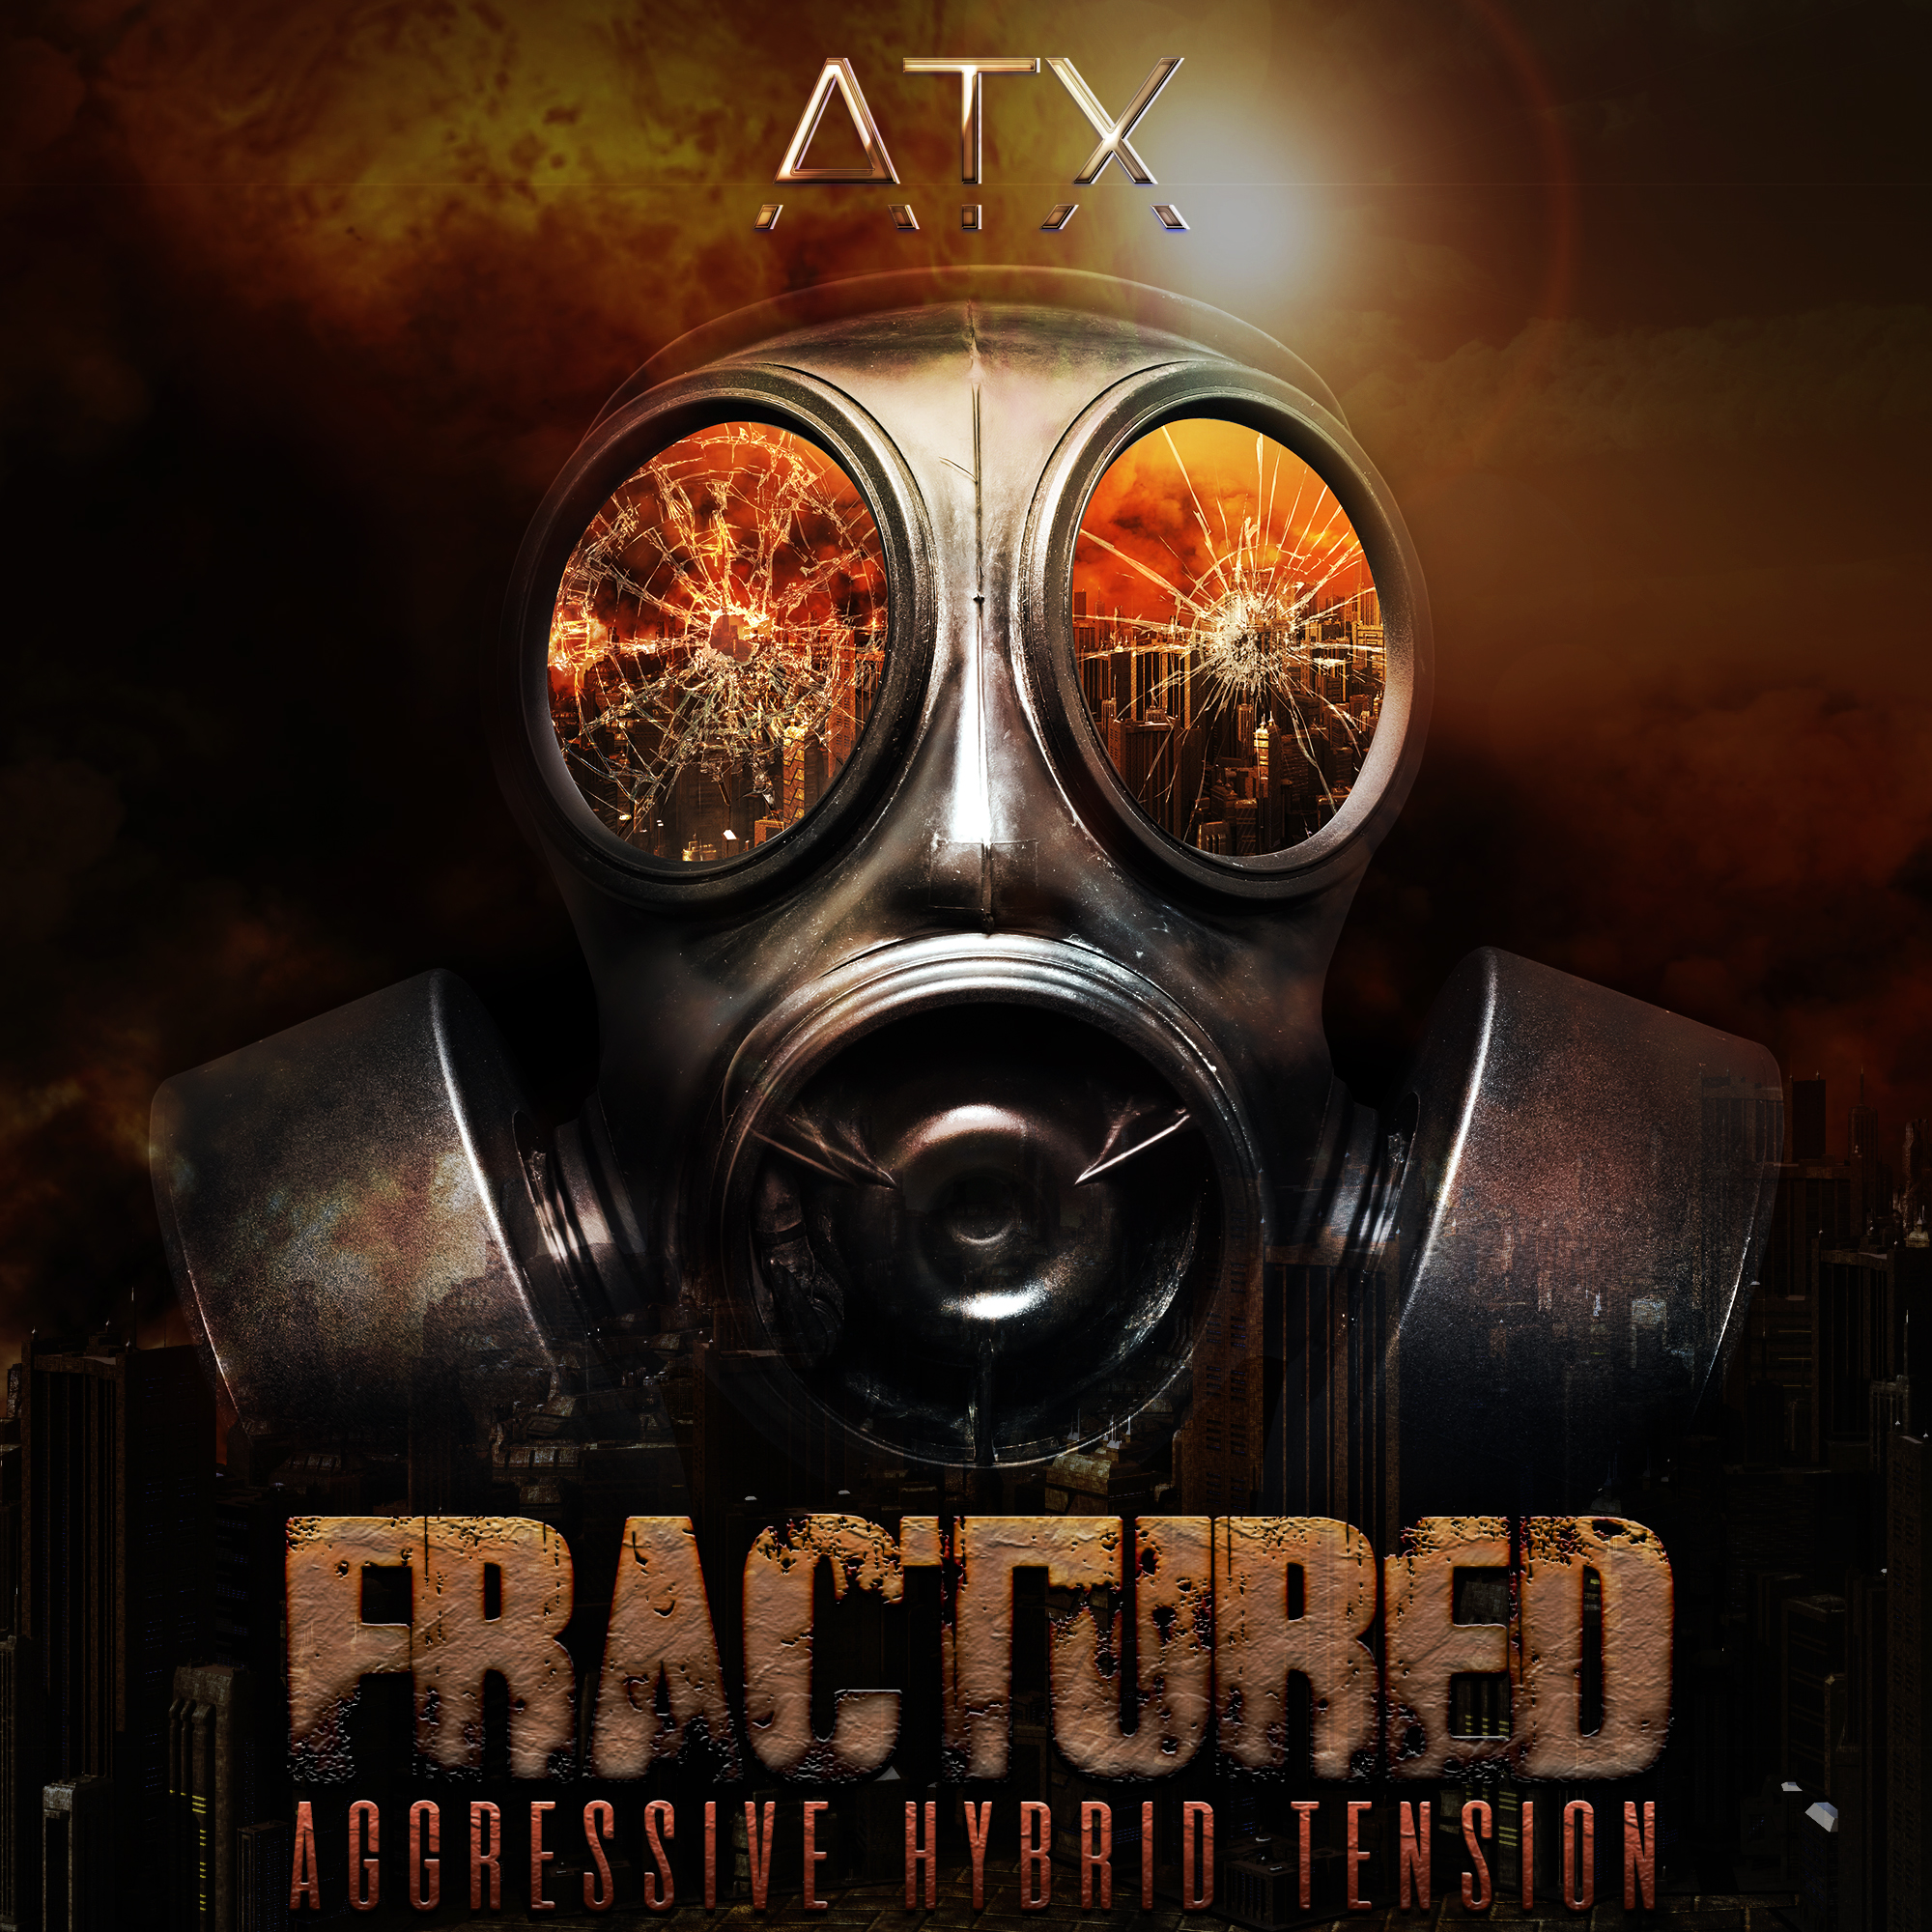 Fractured - Aggressive Hybrid Tension